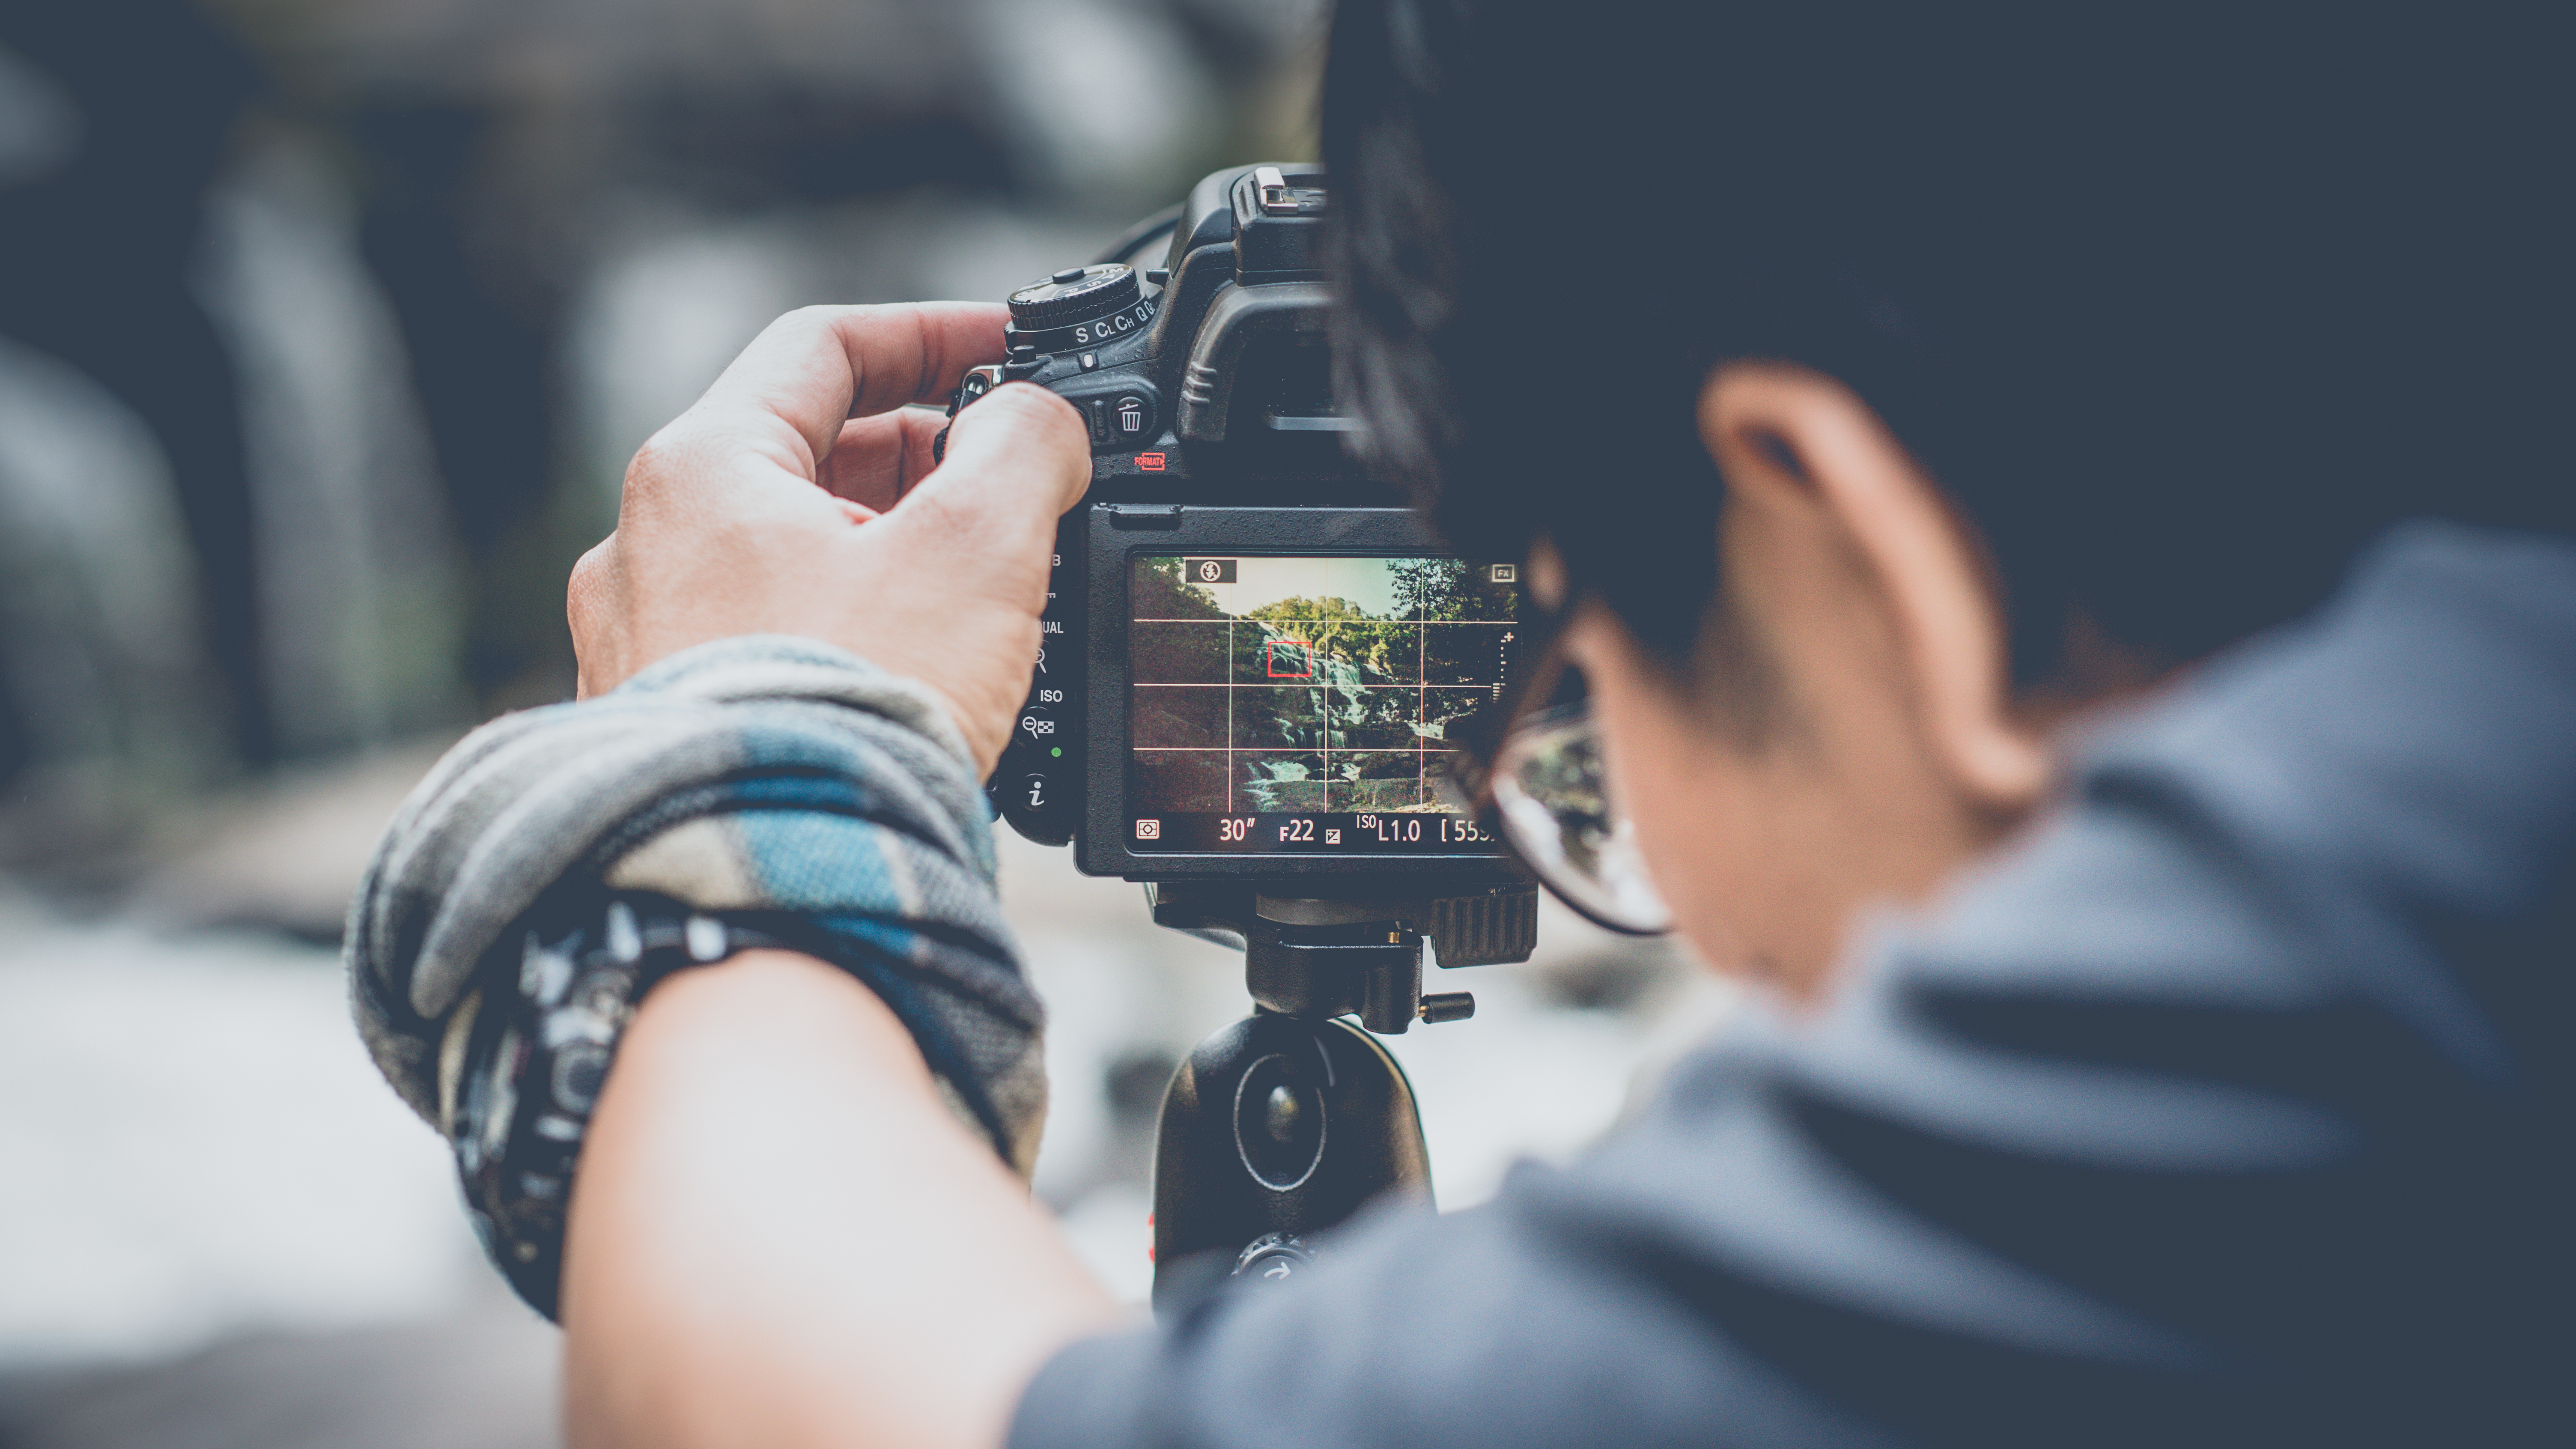 Filming on a Budget: Tips to producing affordable video content